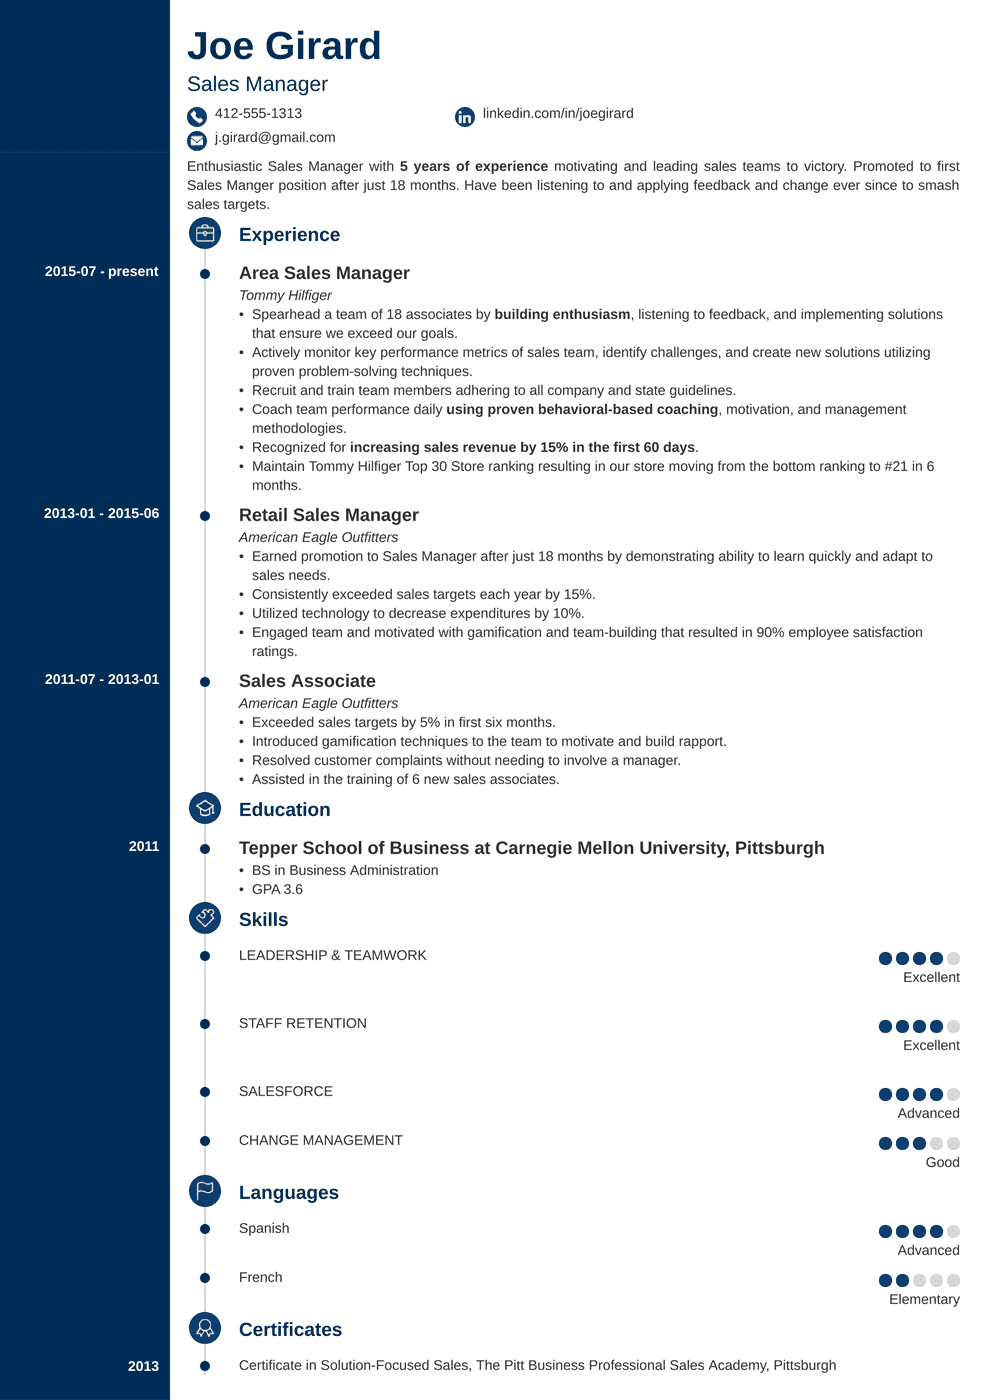 sales manager resume template concept in 2020 Resume